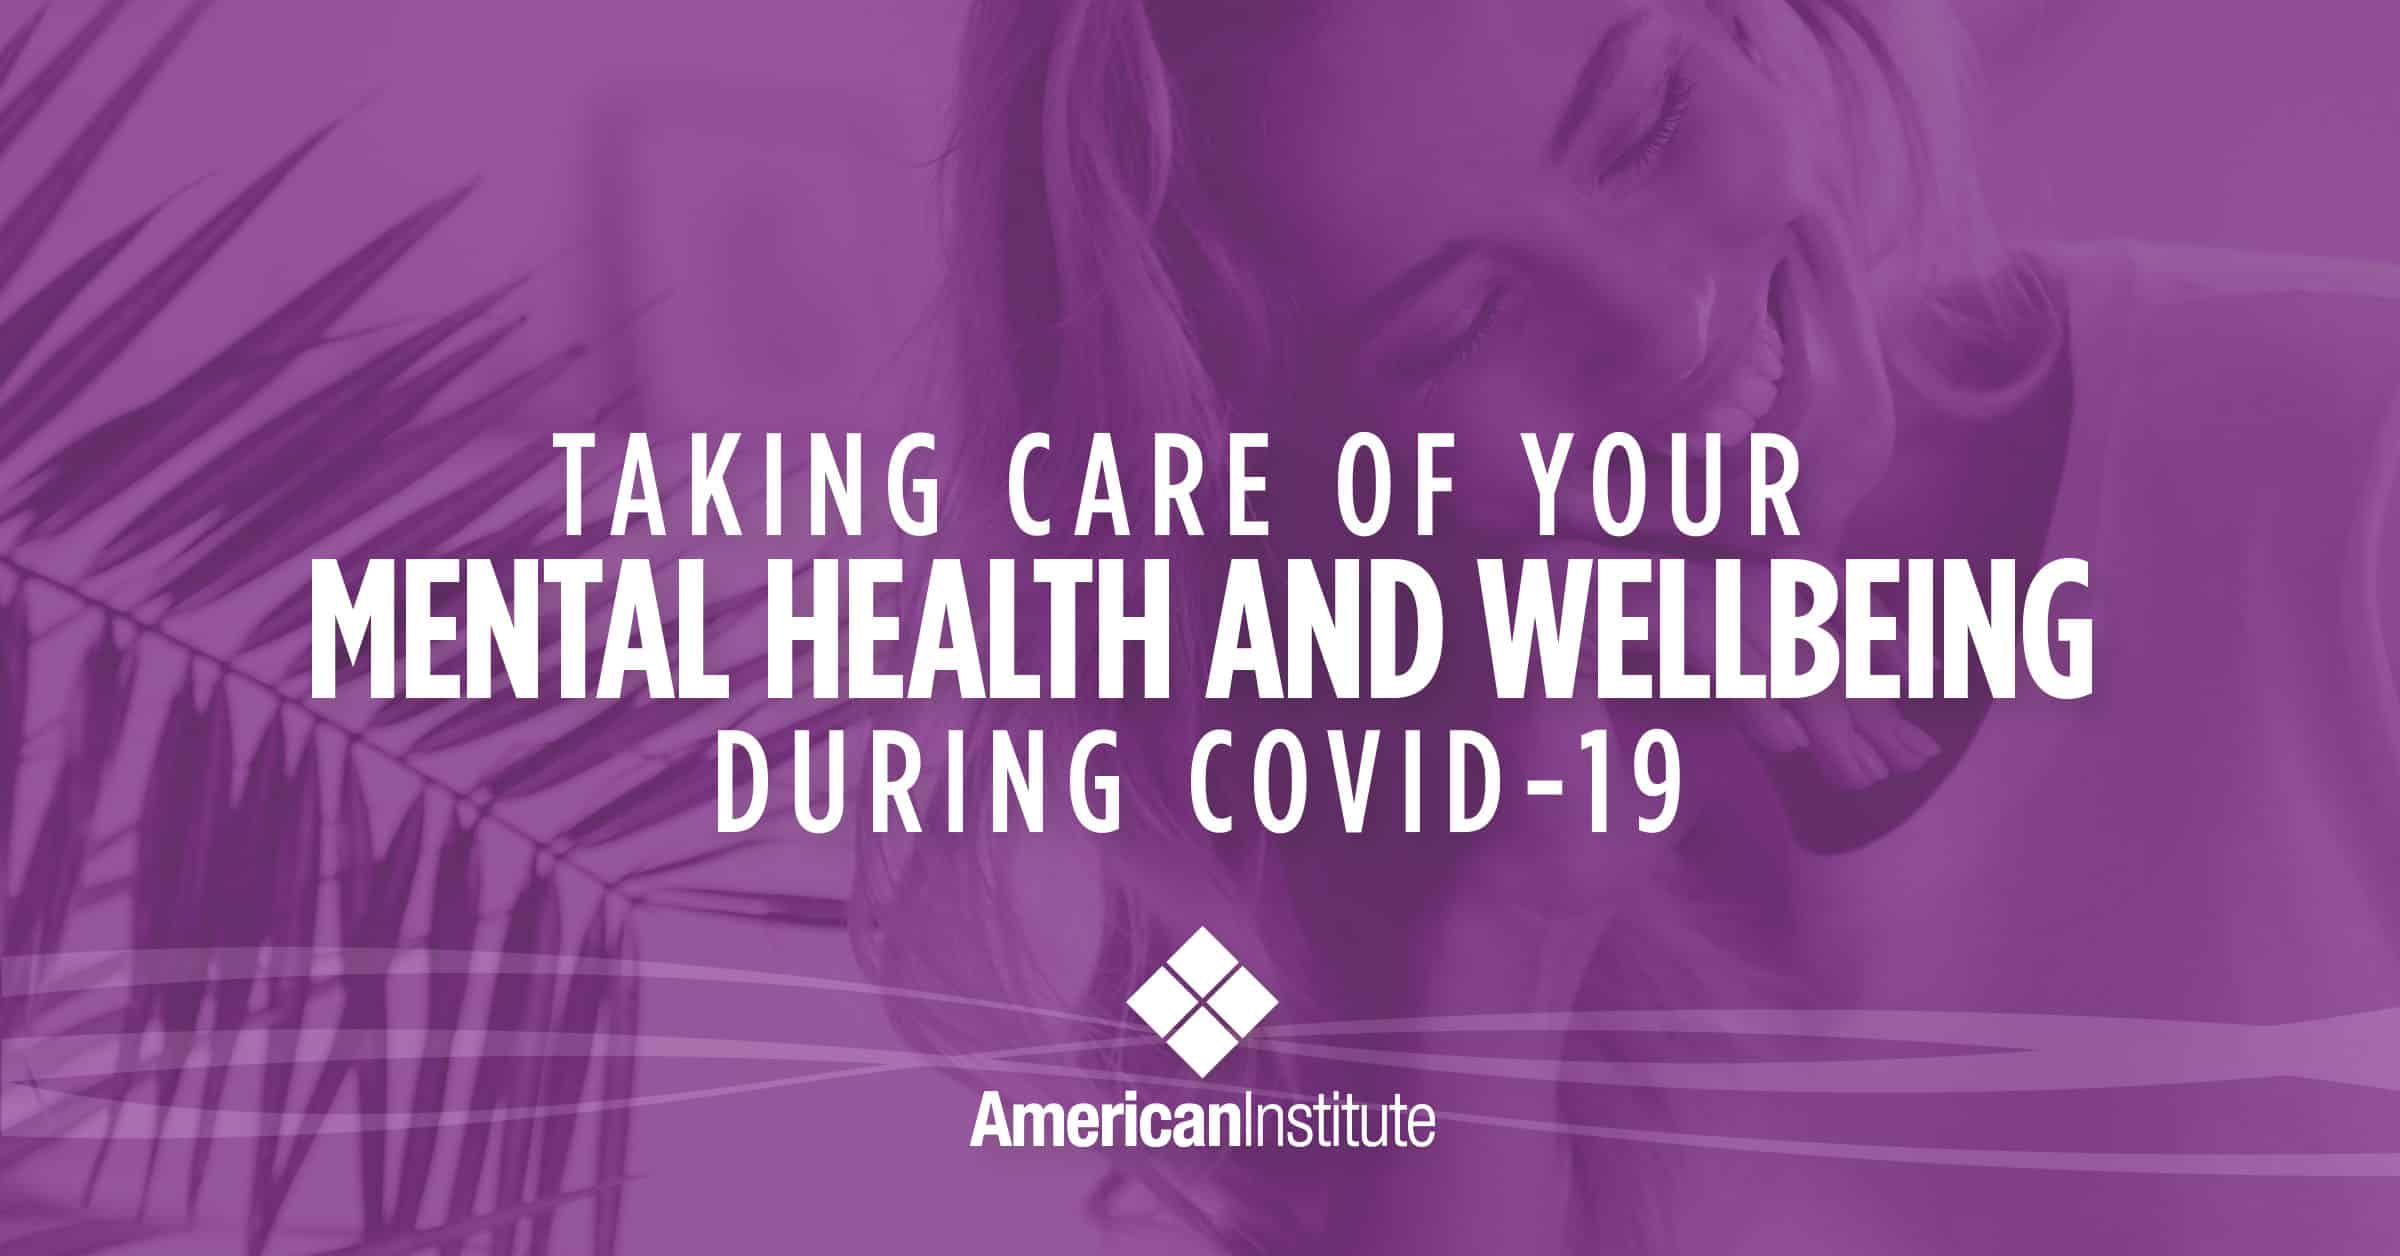 Taking Care of Your Mental Health and Wellbeing During COVID-19